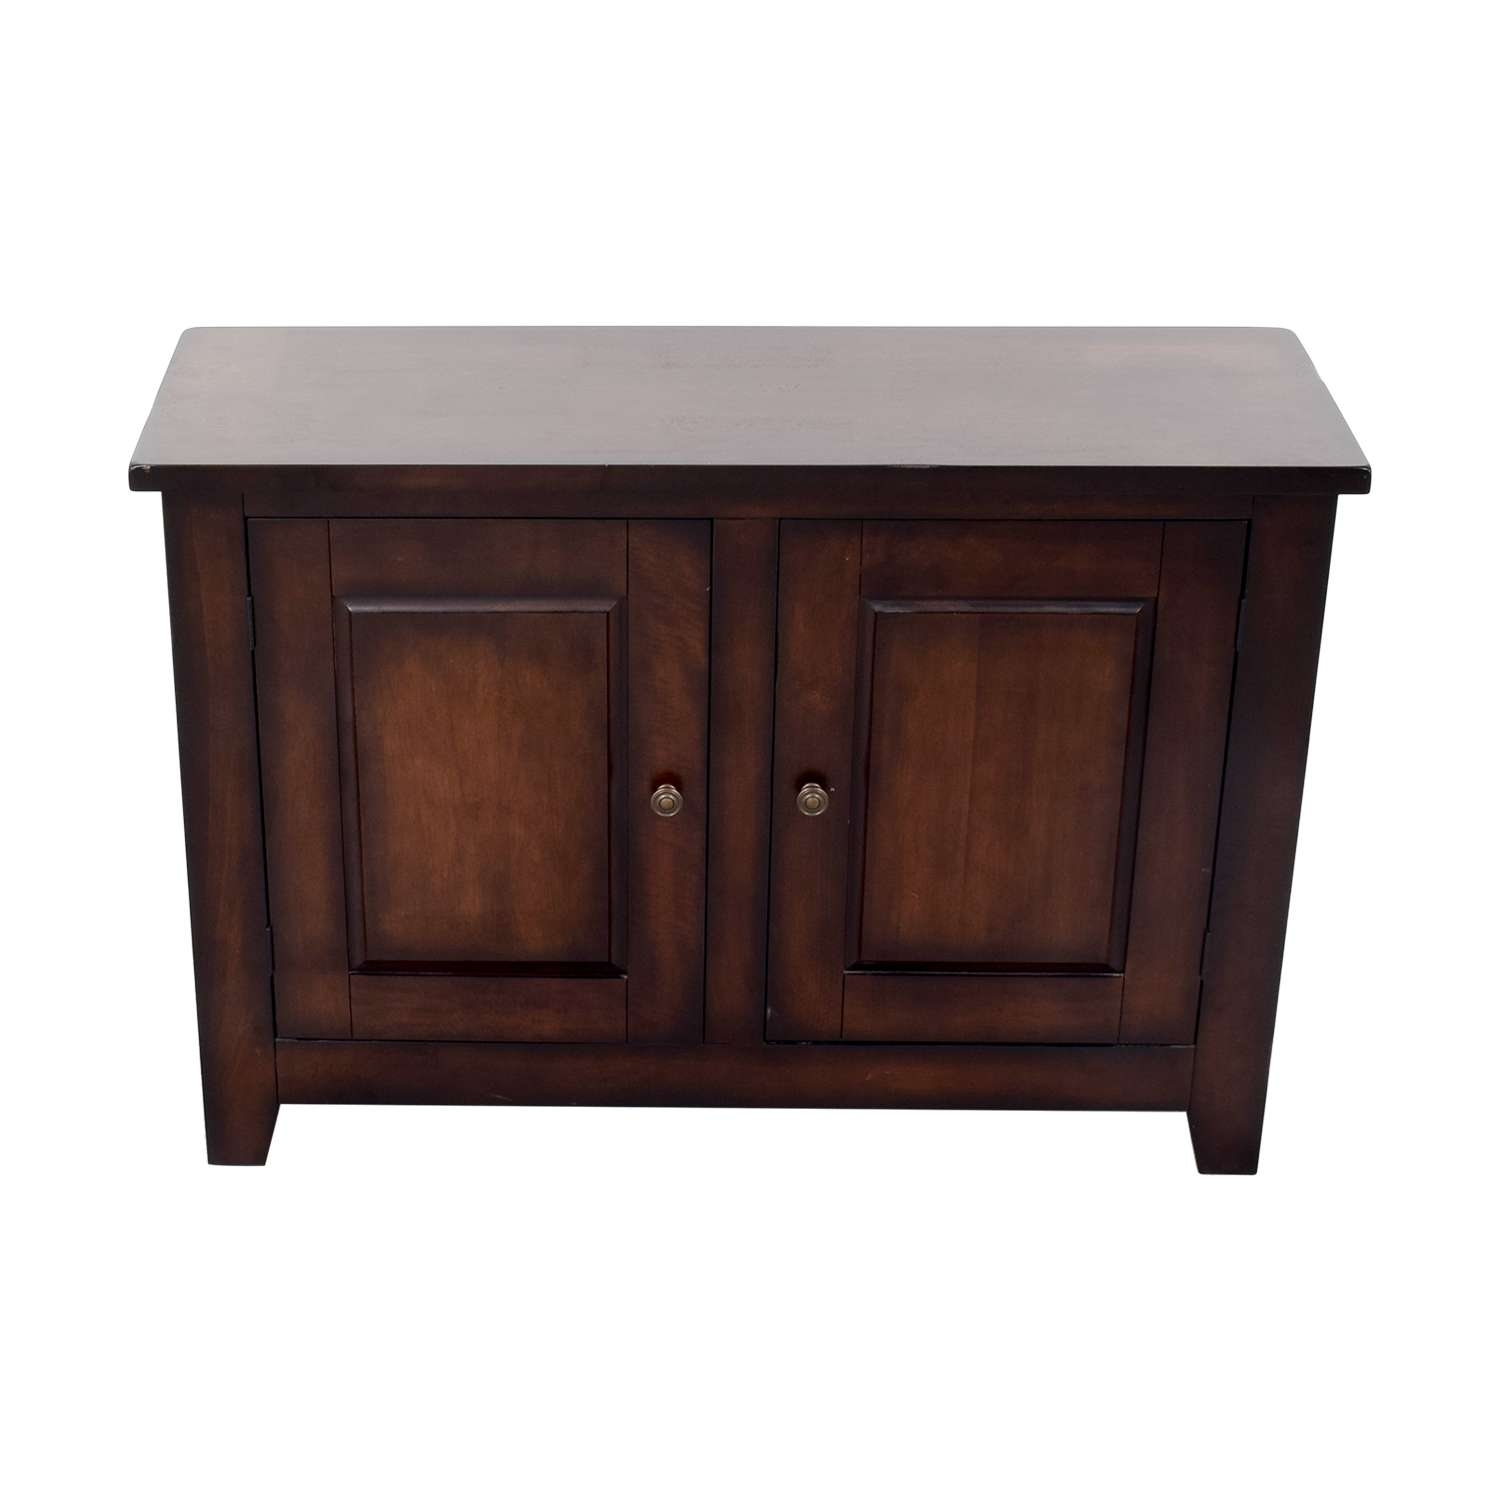 Second Hand Cabinets & Sideboards Under $500 Throughout Credenza Sideboards (View 13 of 20)